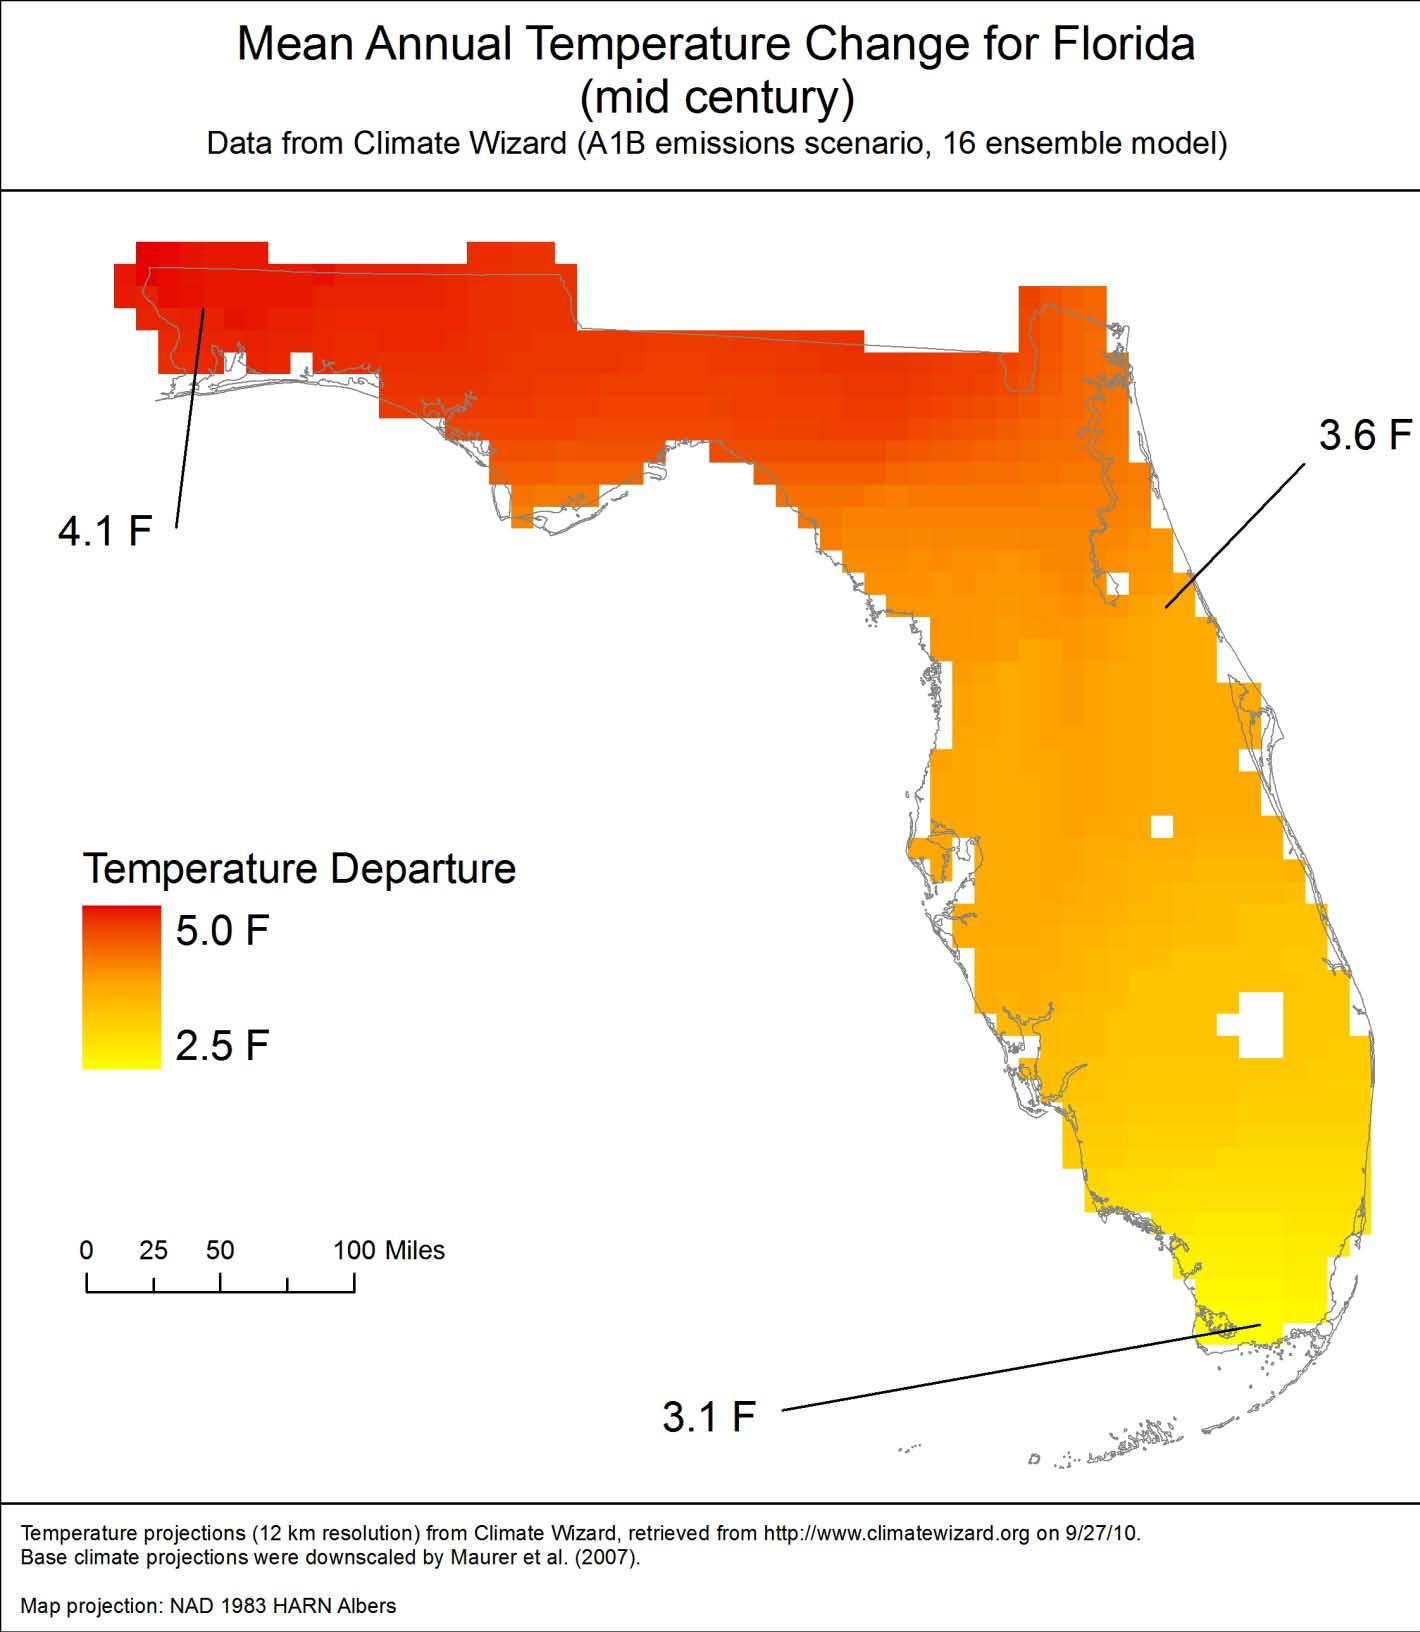 Figure 2. Projected change in mean annual temperature for Florida by mid century.